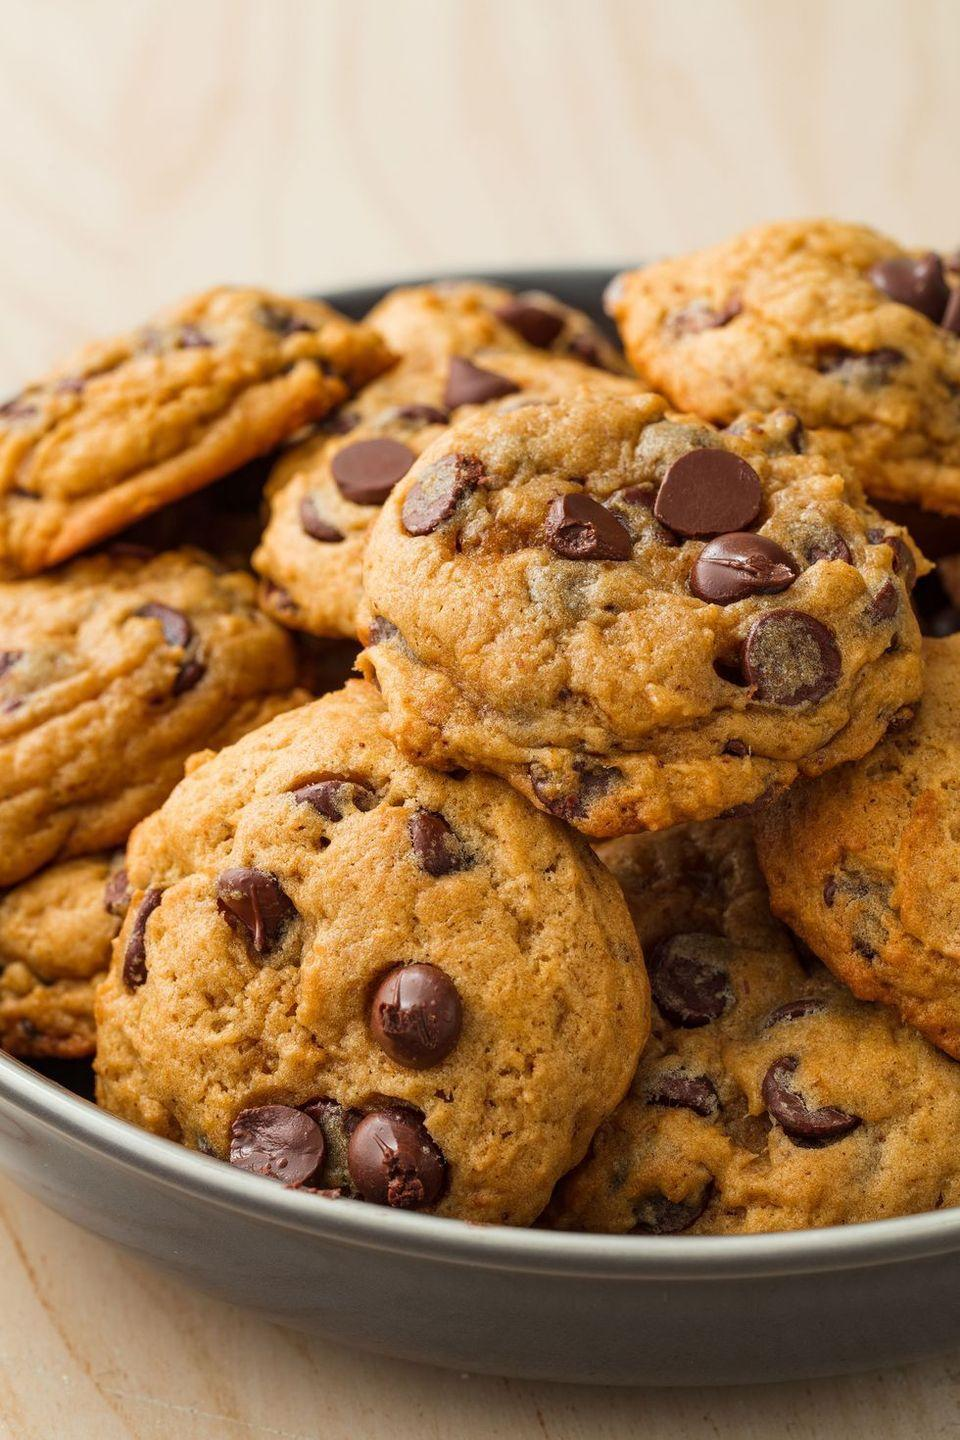 """<p>Forget Halloween — you'll want to eat these cookies all season long.</p><p><a href=""""https://www.delish.com/cooking/recipe-ideas/recipes/a55742/pumpkin-spice-chocolate-chip-cookies-recipe/"""" rel=""""nofollow noopener"""" target=""""_blank"""" data-ylk=""""slk:Get the recipe from Delish »"""" class=""""link rapid-noclick-resp""""><em>Get the recipe from Delish »</em></a></p>"""